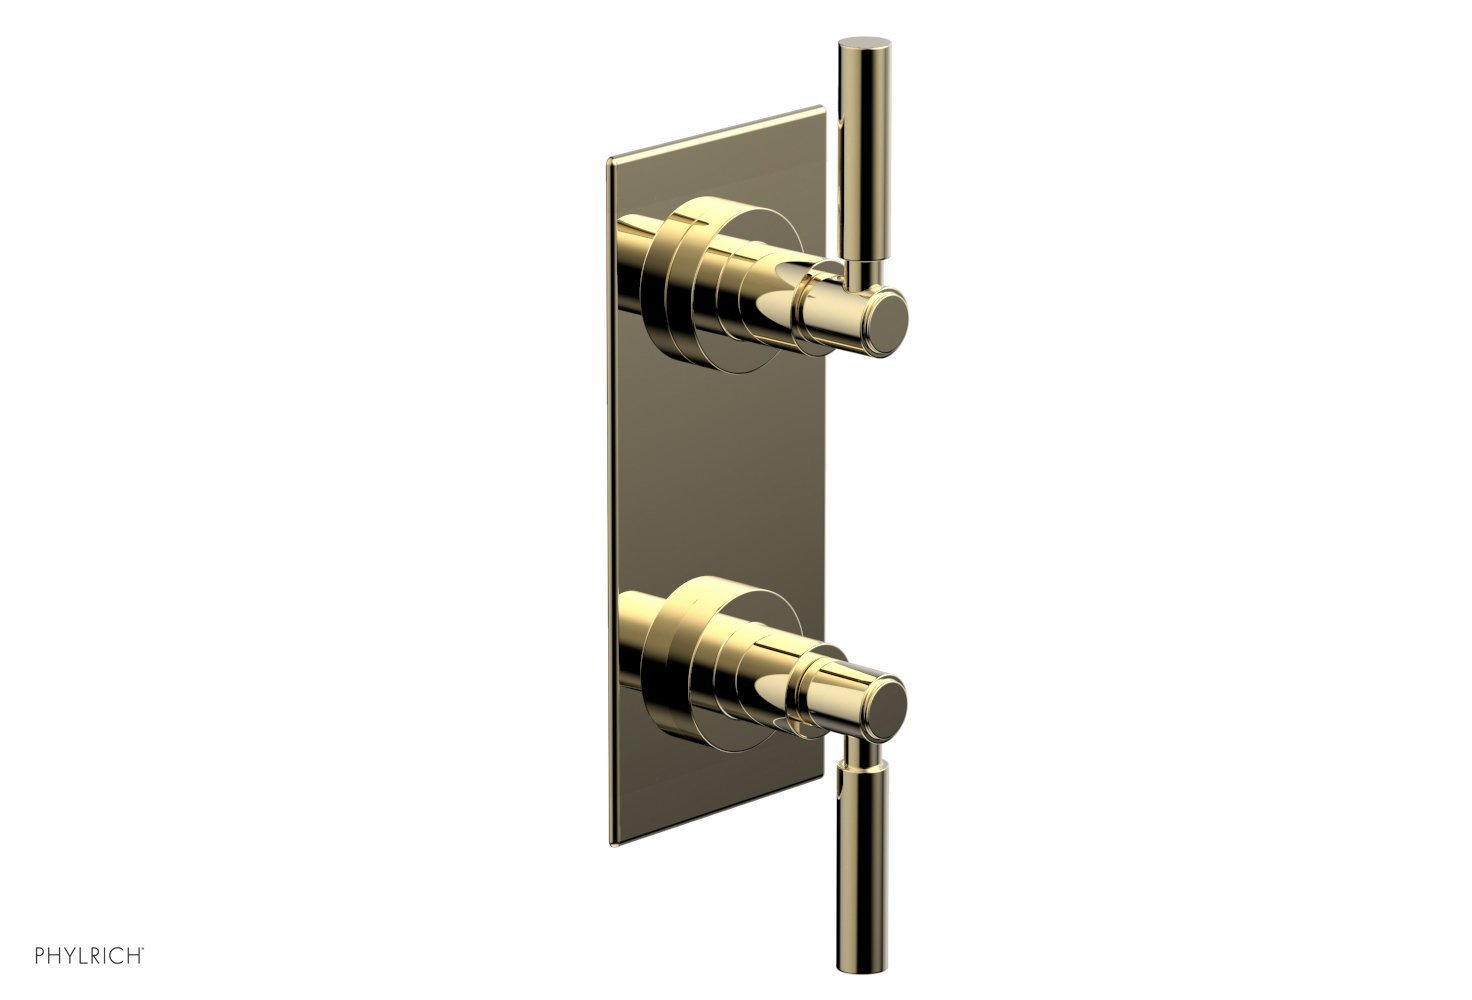 """BASIC 1/2"""" Thermostatic Valve with Volume Control or Diverter Lever Handles 4-344 - Polished Brass Uncoated"""